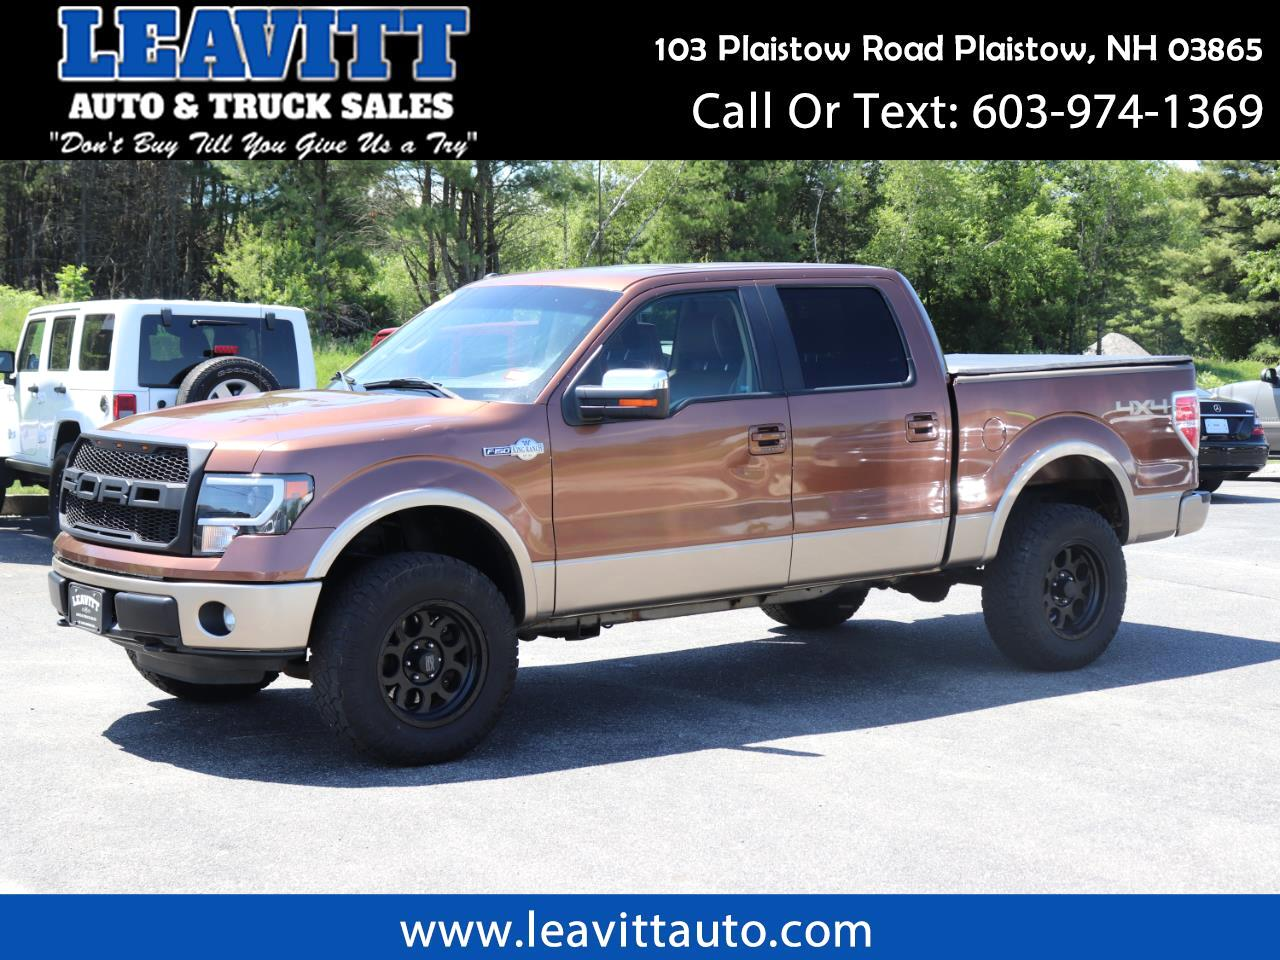 2011 Ford F-150 KING RANCH SUPERCREW LOADED!!